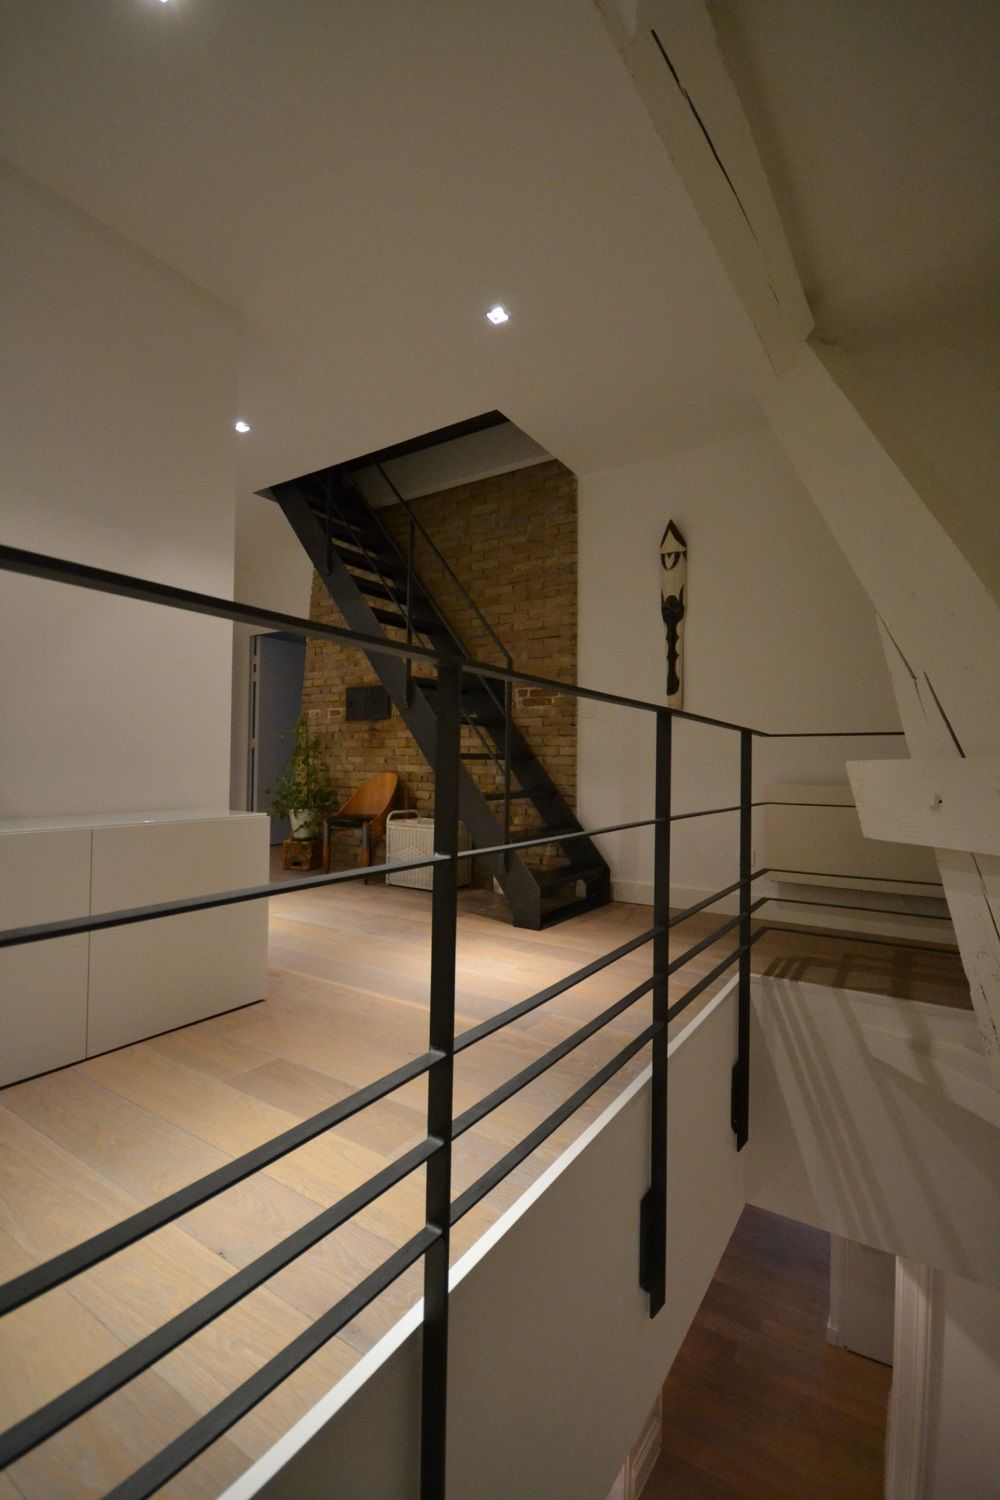 Balustrade mezzanine google search balustrade pinterest search mezzanine and railings - Mezzanine trap ...